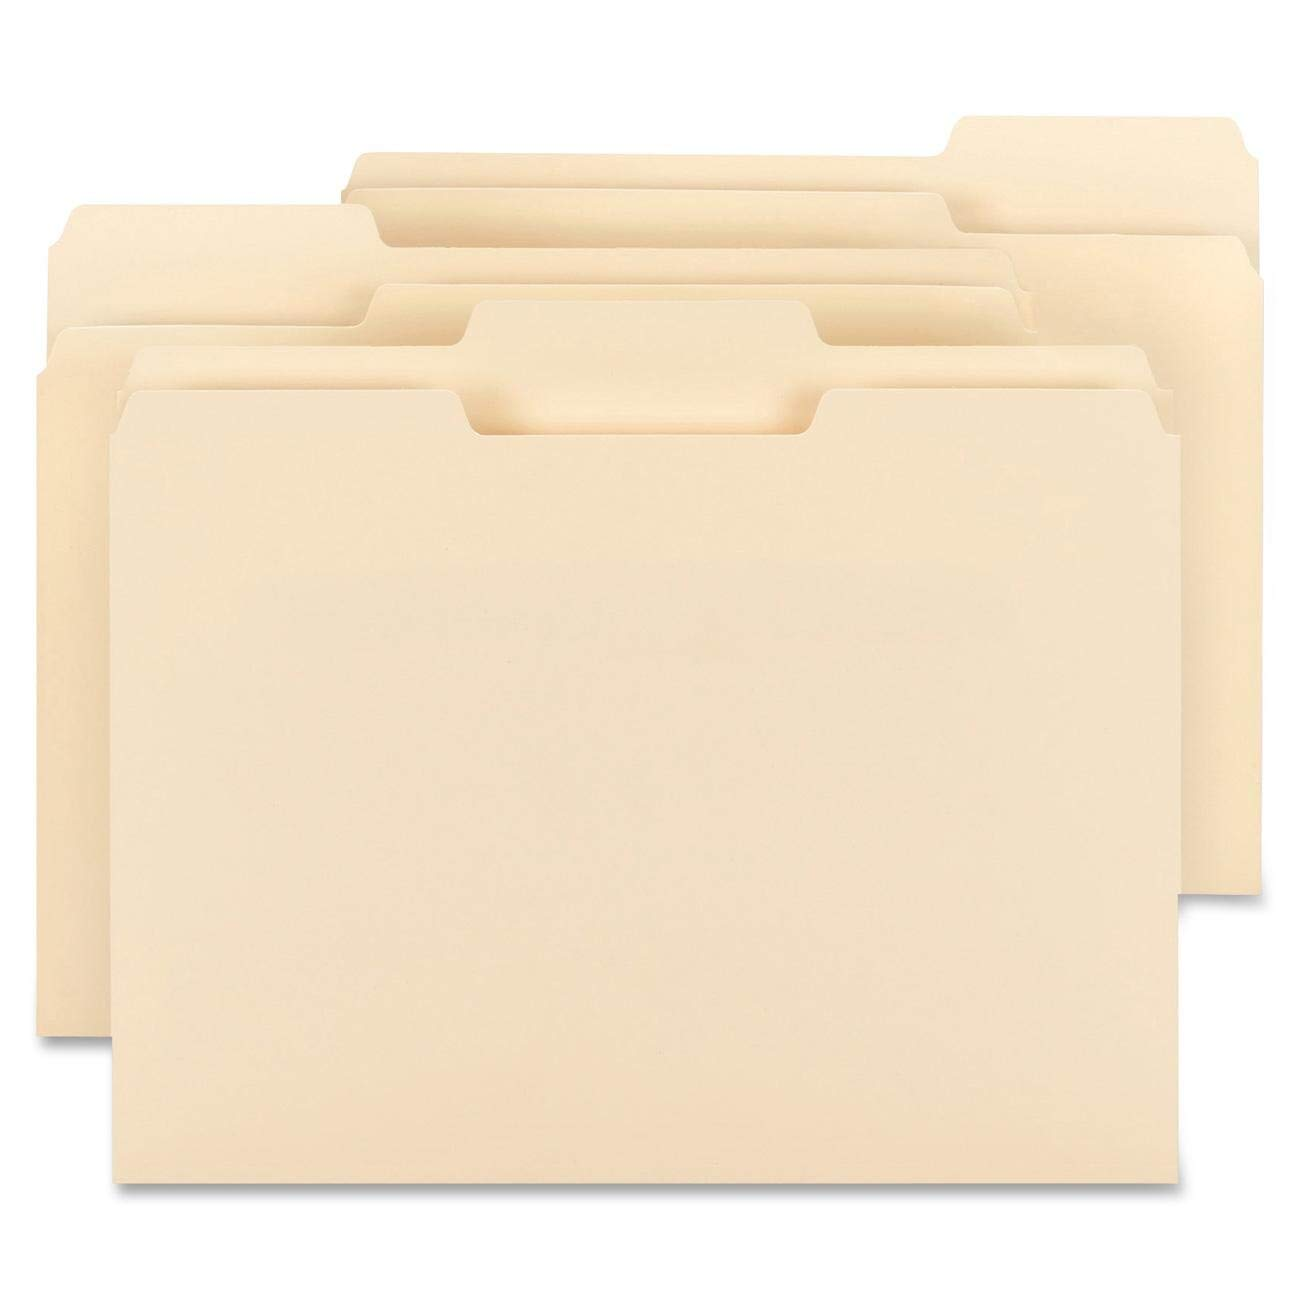 Big River Value Plus File Folders, 1/3-Cut Tab, Assorted Position, Letter Size (11-5/8'' W x 9-1/2'' H), Manila, File Folder, (Box of 200). Perfect for Everyday use, in Home or Office.